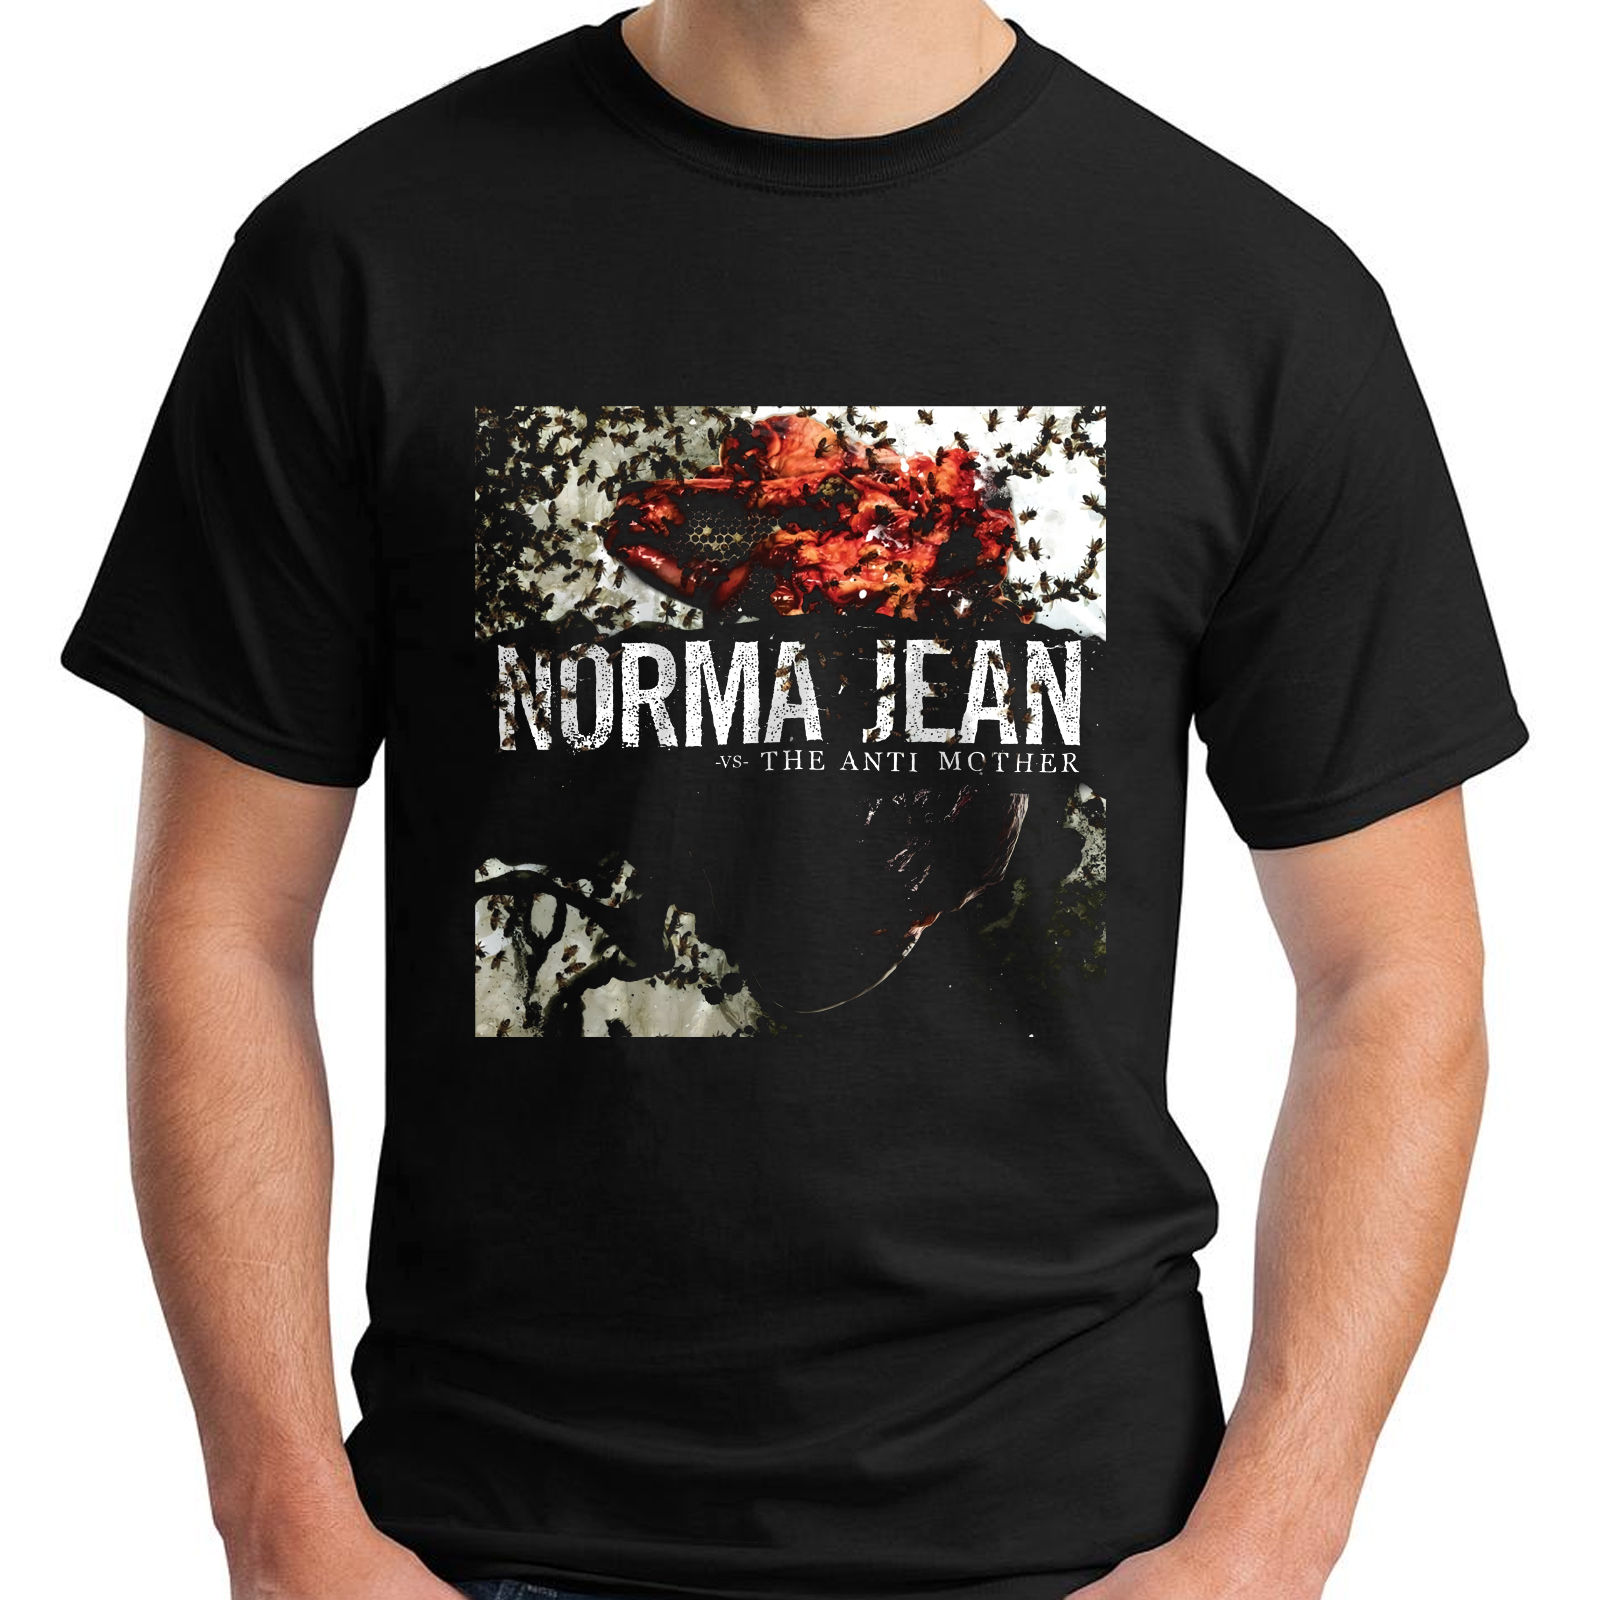 2019 Fashion Hot Sale NORMA JEAN The Anti Mother Metalcore Band Sleeve Black Men's T-Shirt Size S-5XL Tee shirt image